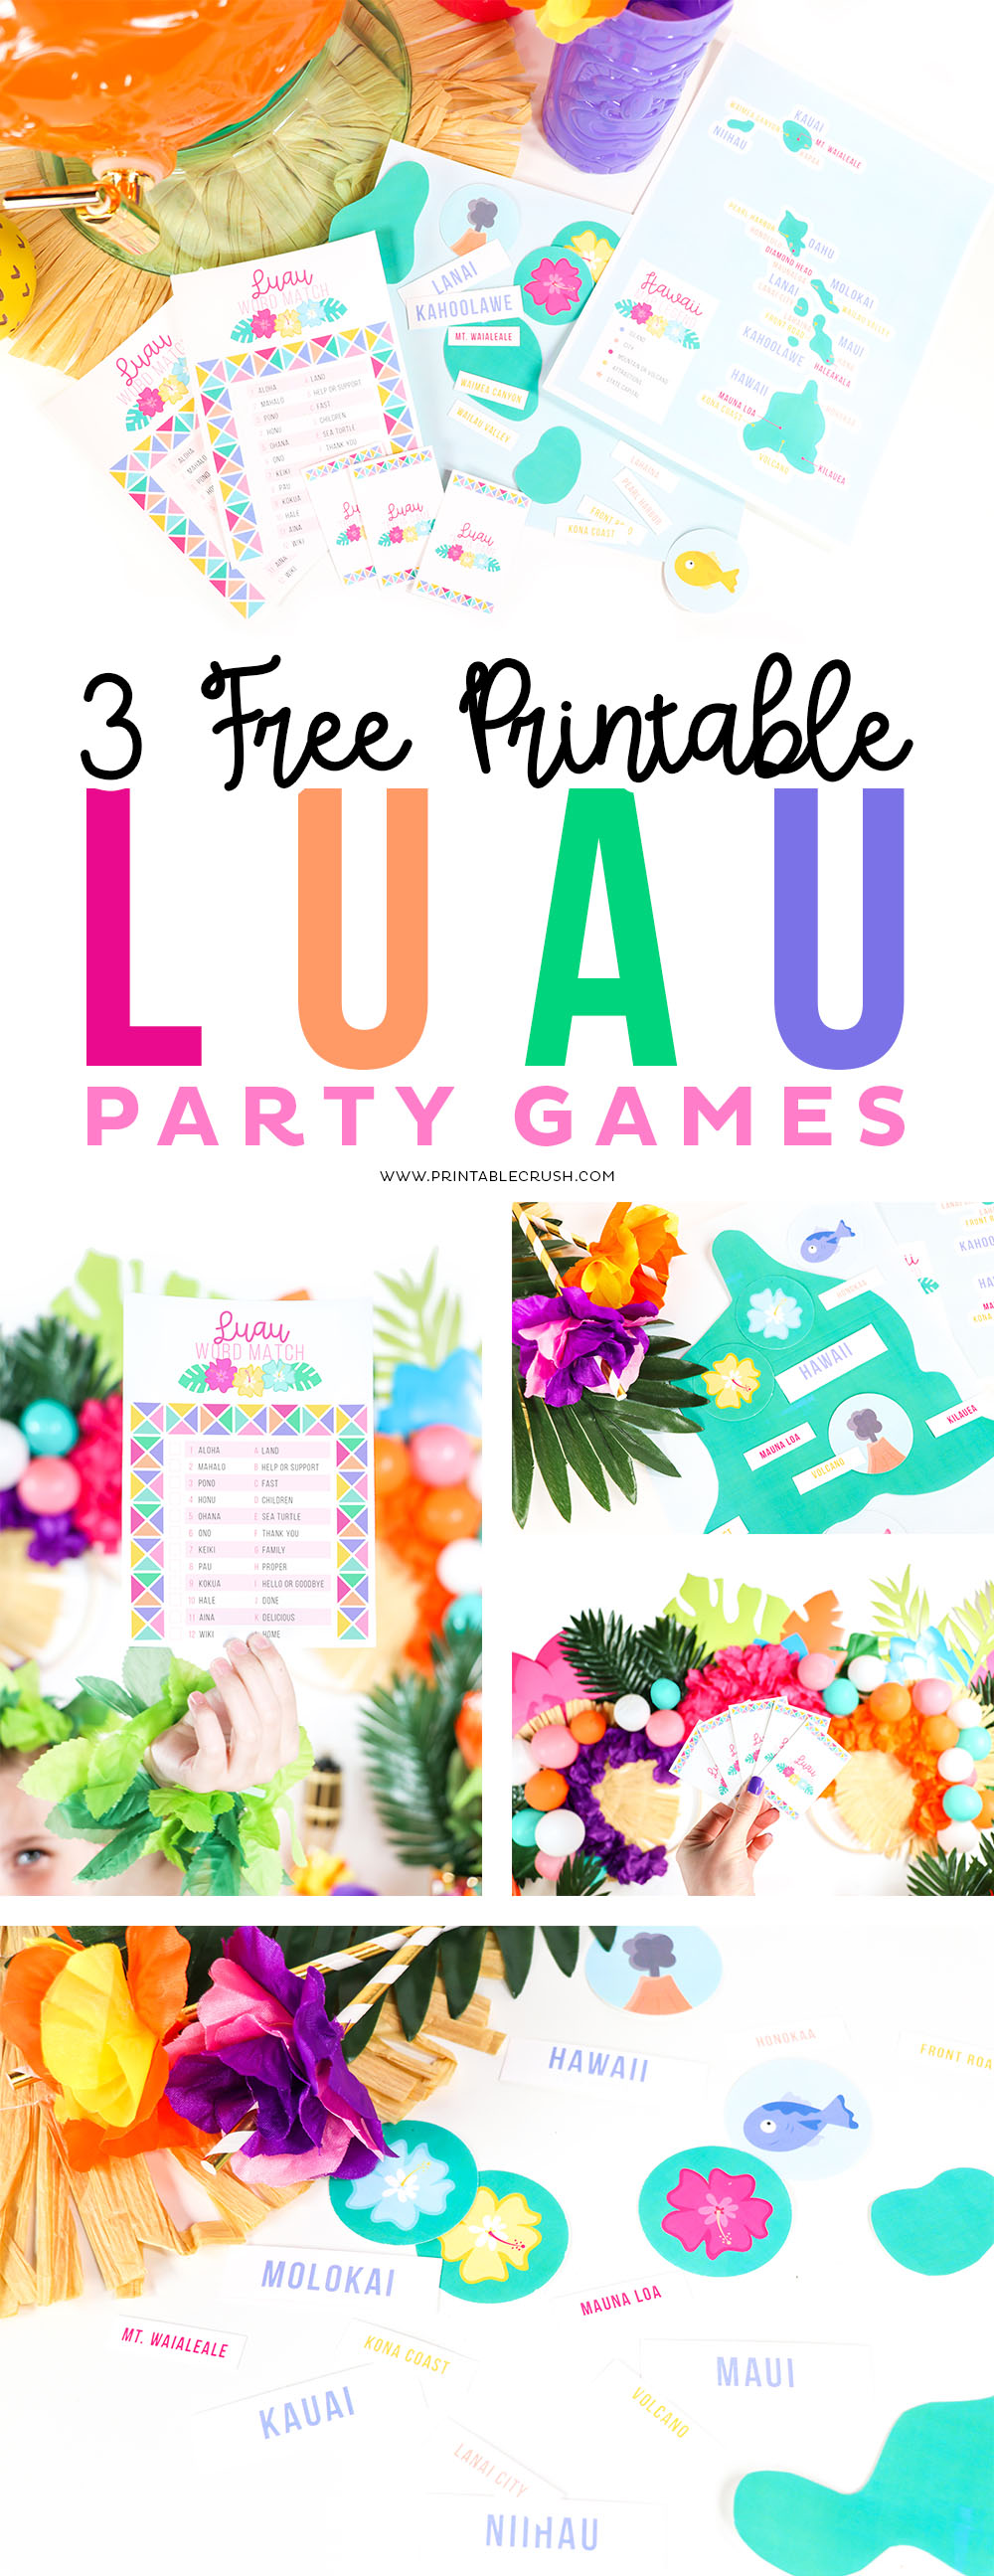 These FREE Printable Luau Party Games are perfect for the summer luau party. Such a fun way to keep the kids entertained! #freeprintable #printablepartygames #partygames #freepartygames #printablecrush #luaupartygames #luaugames #hawaiimap #gamesforkids #partygamesforkids